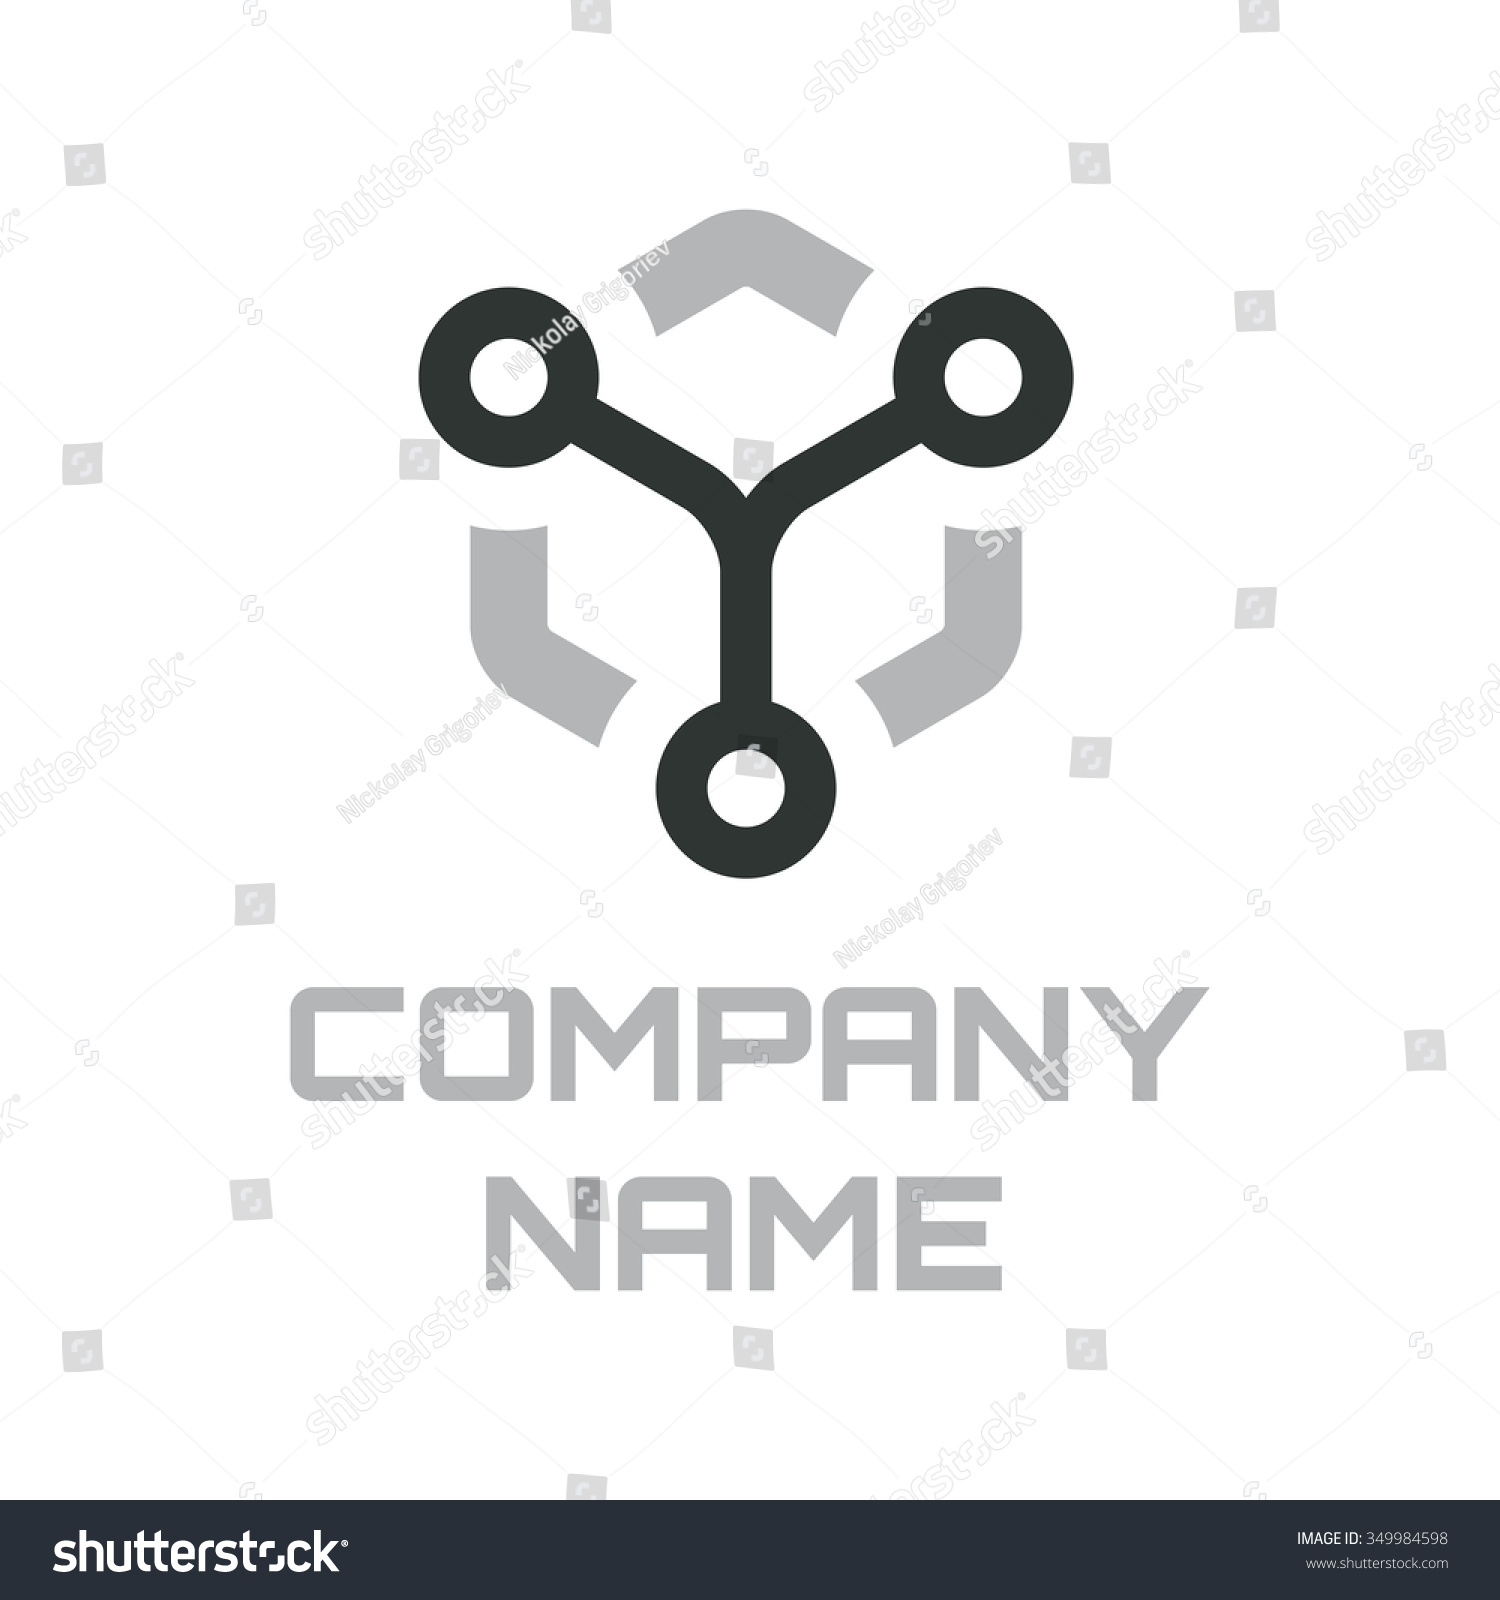 Template Electronics Logotype Computer Branding Elements Stock